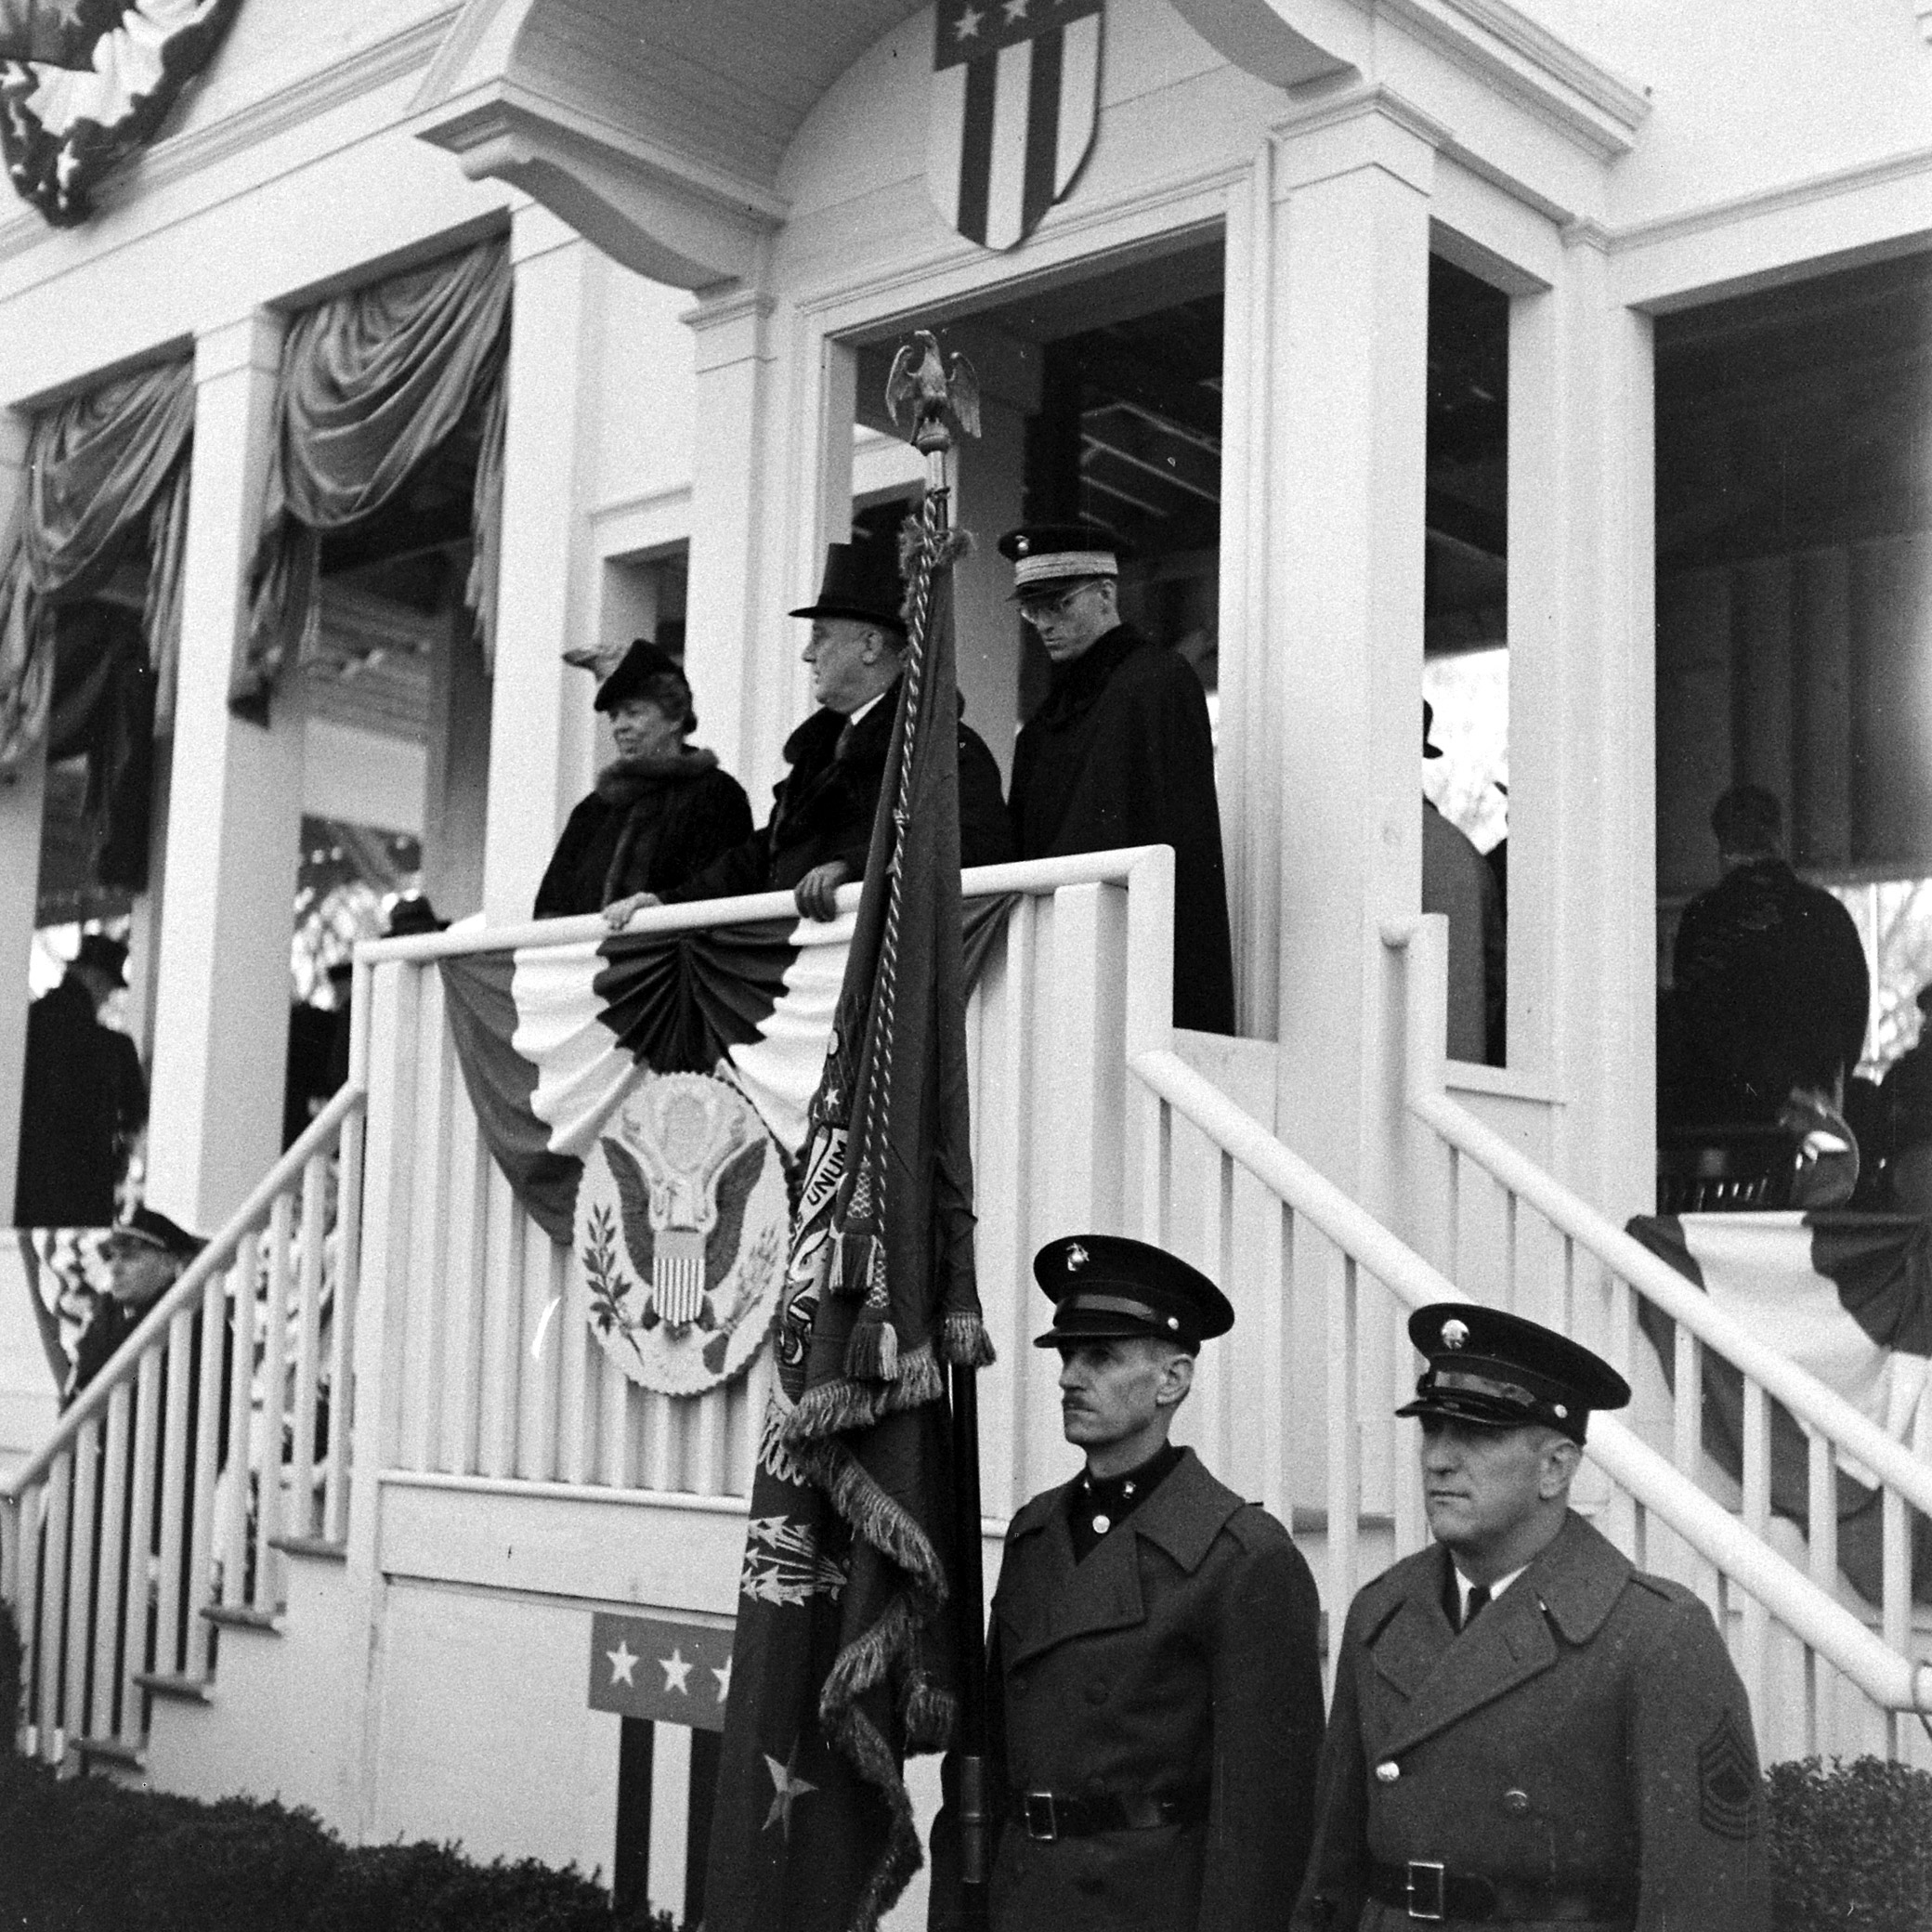 Third inauguration ceremony of President Franklin D. Roosevelt in 1941.